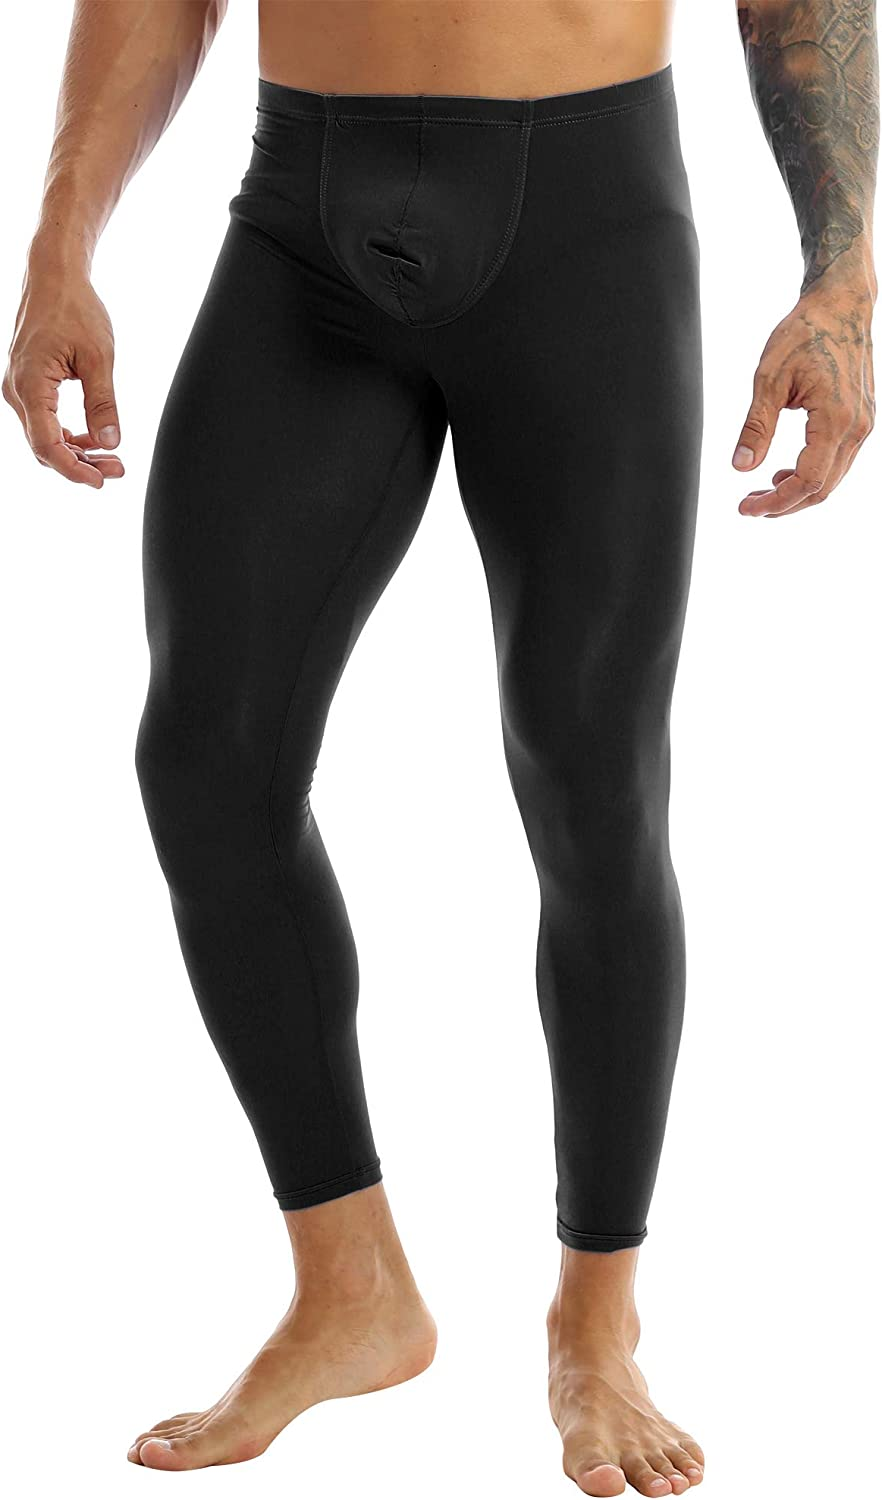 zdhoor Men's Ice Silk Bulge Pouch Underwear Johns Legging Tights Thermal Baselayer Long Pants Trousers